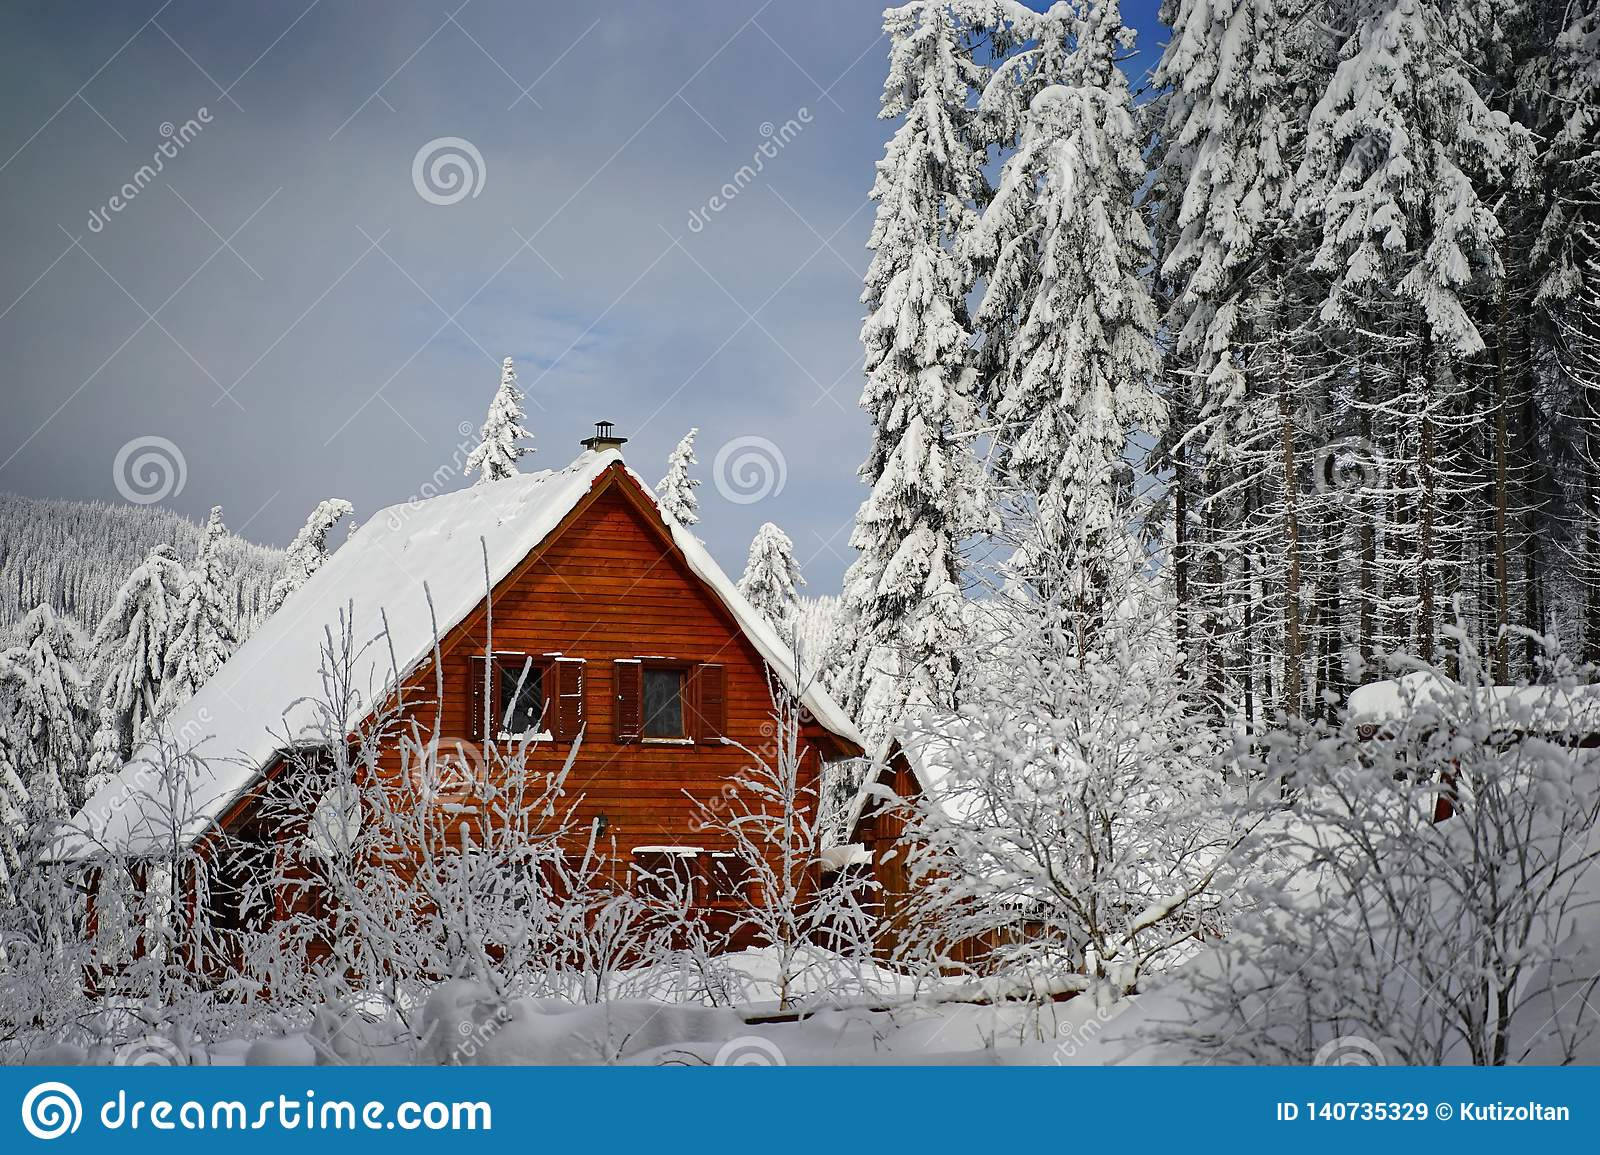 Mountains winter pine tree forest landscape with a chalet